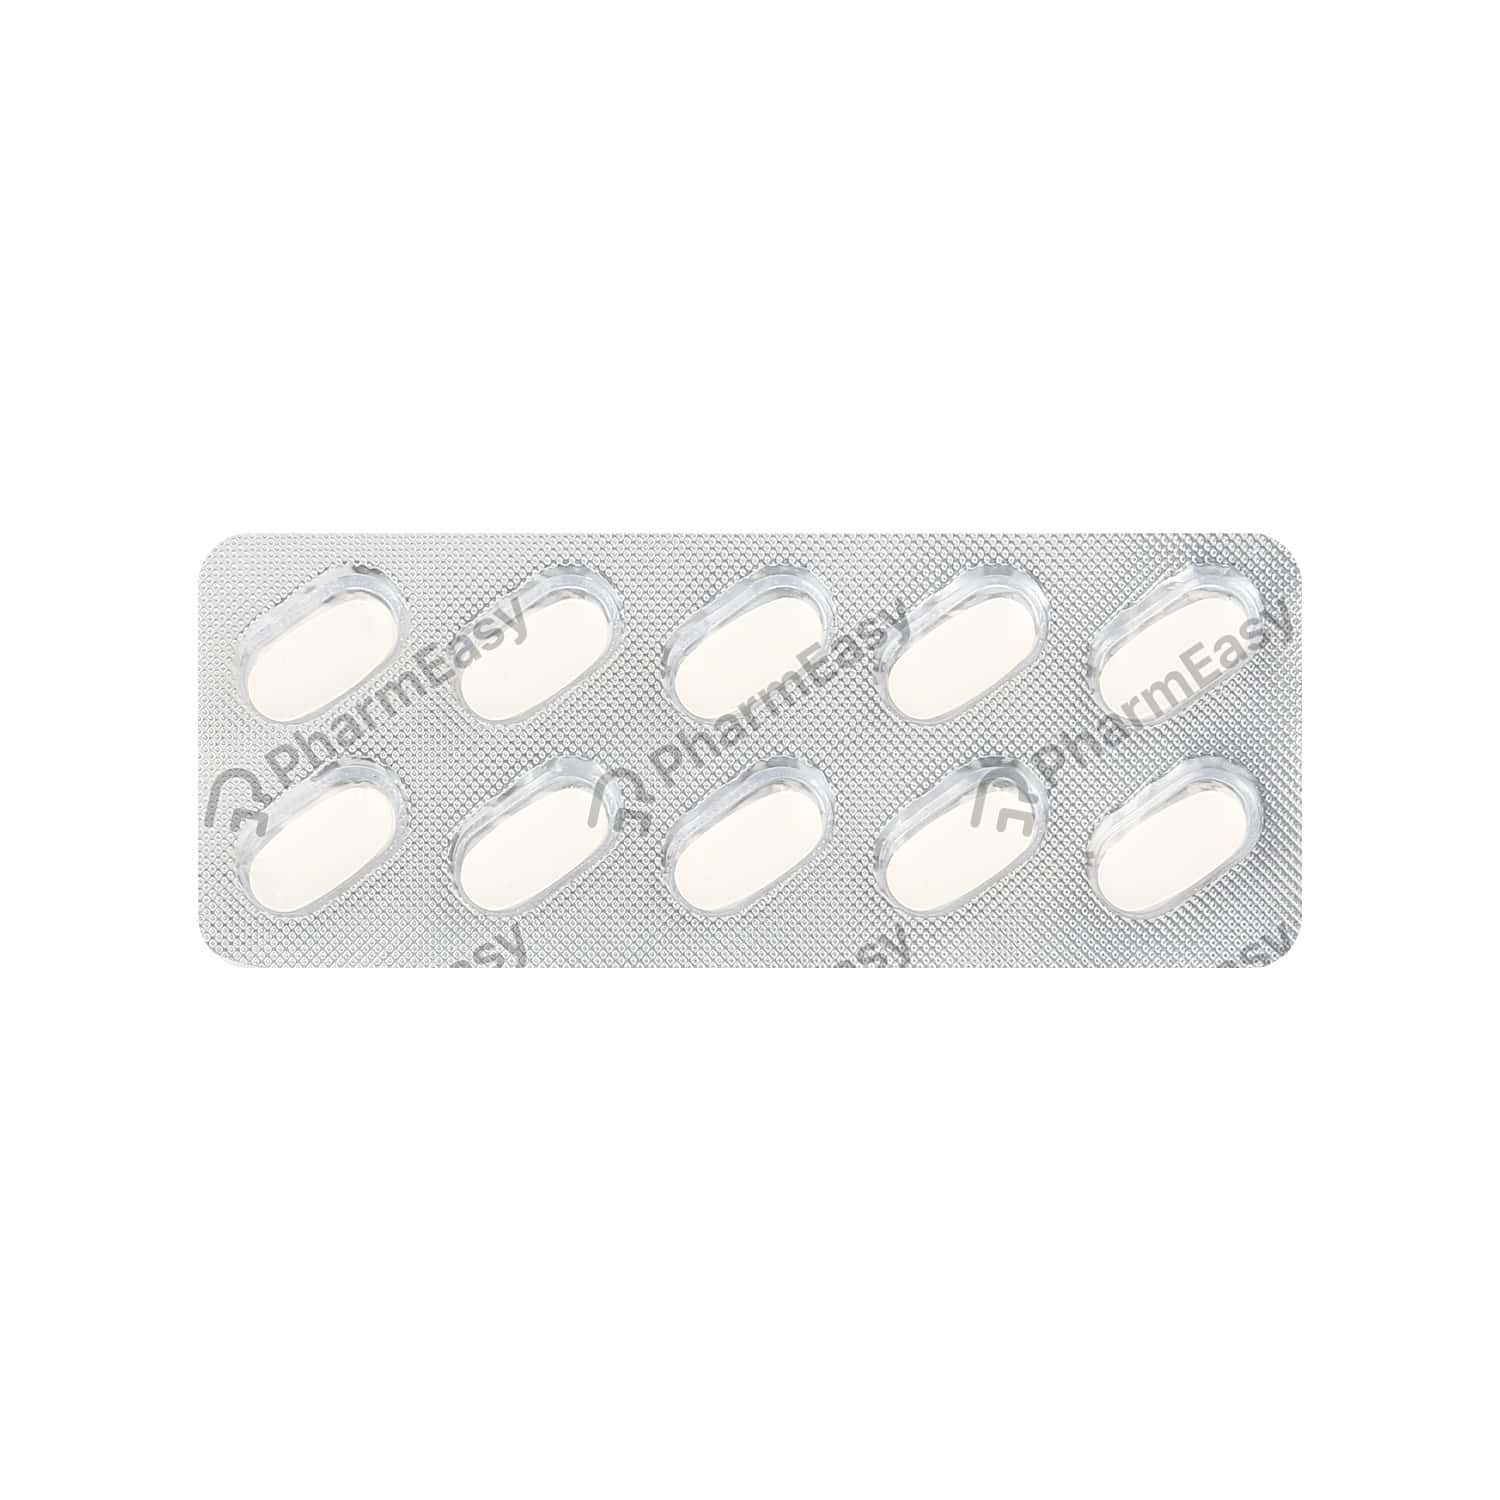 Buscogast Plus Stomach Pain Specialist - Strip Of 10 Tablets